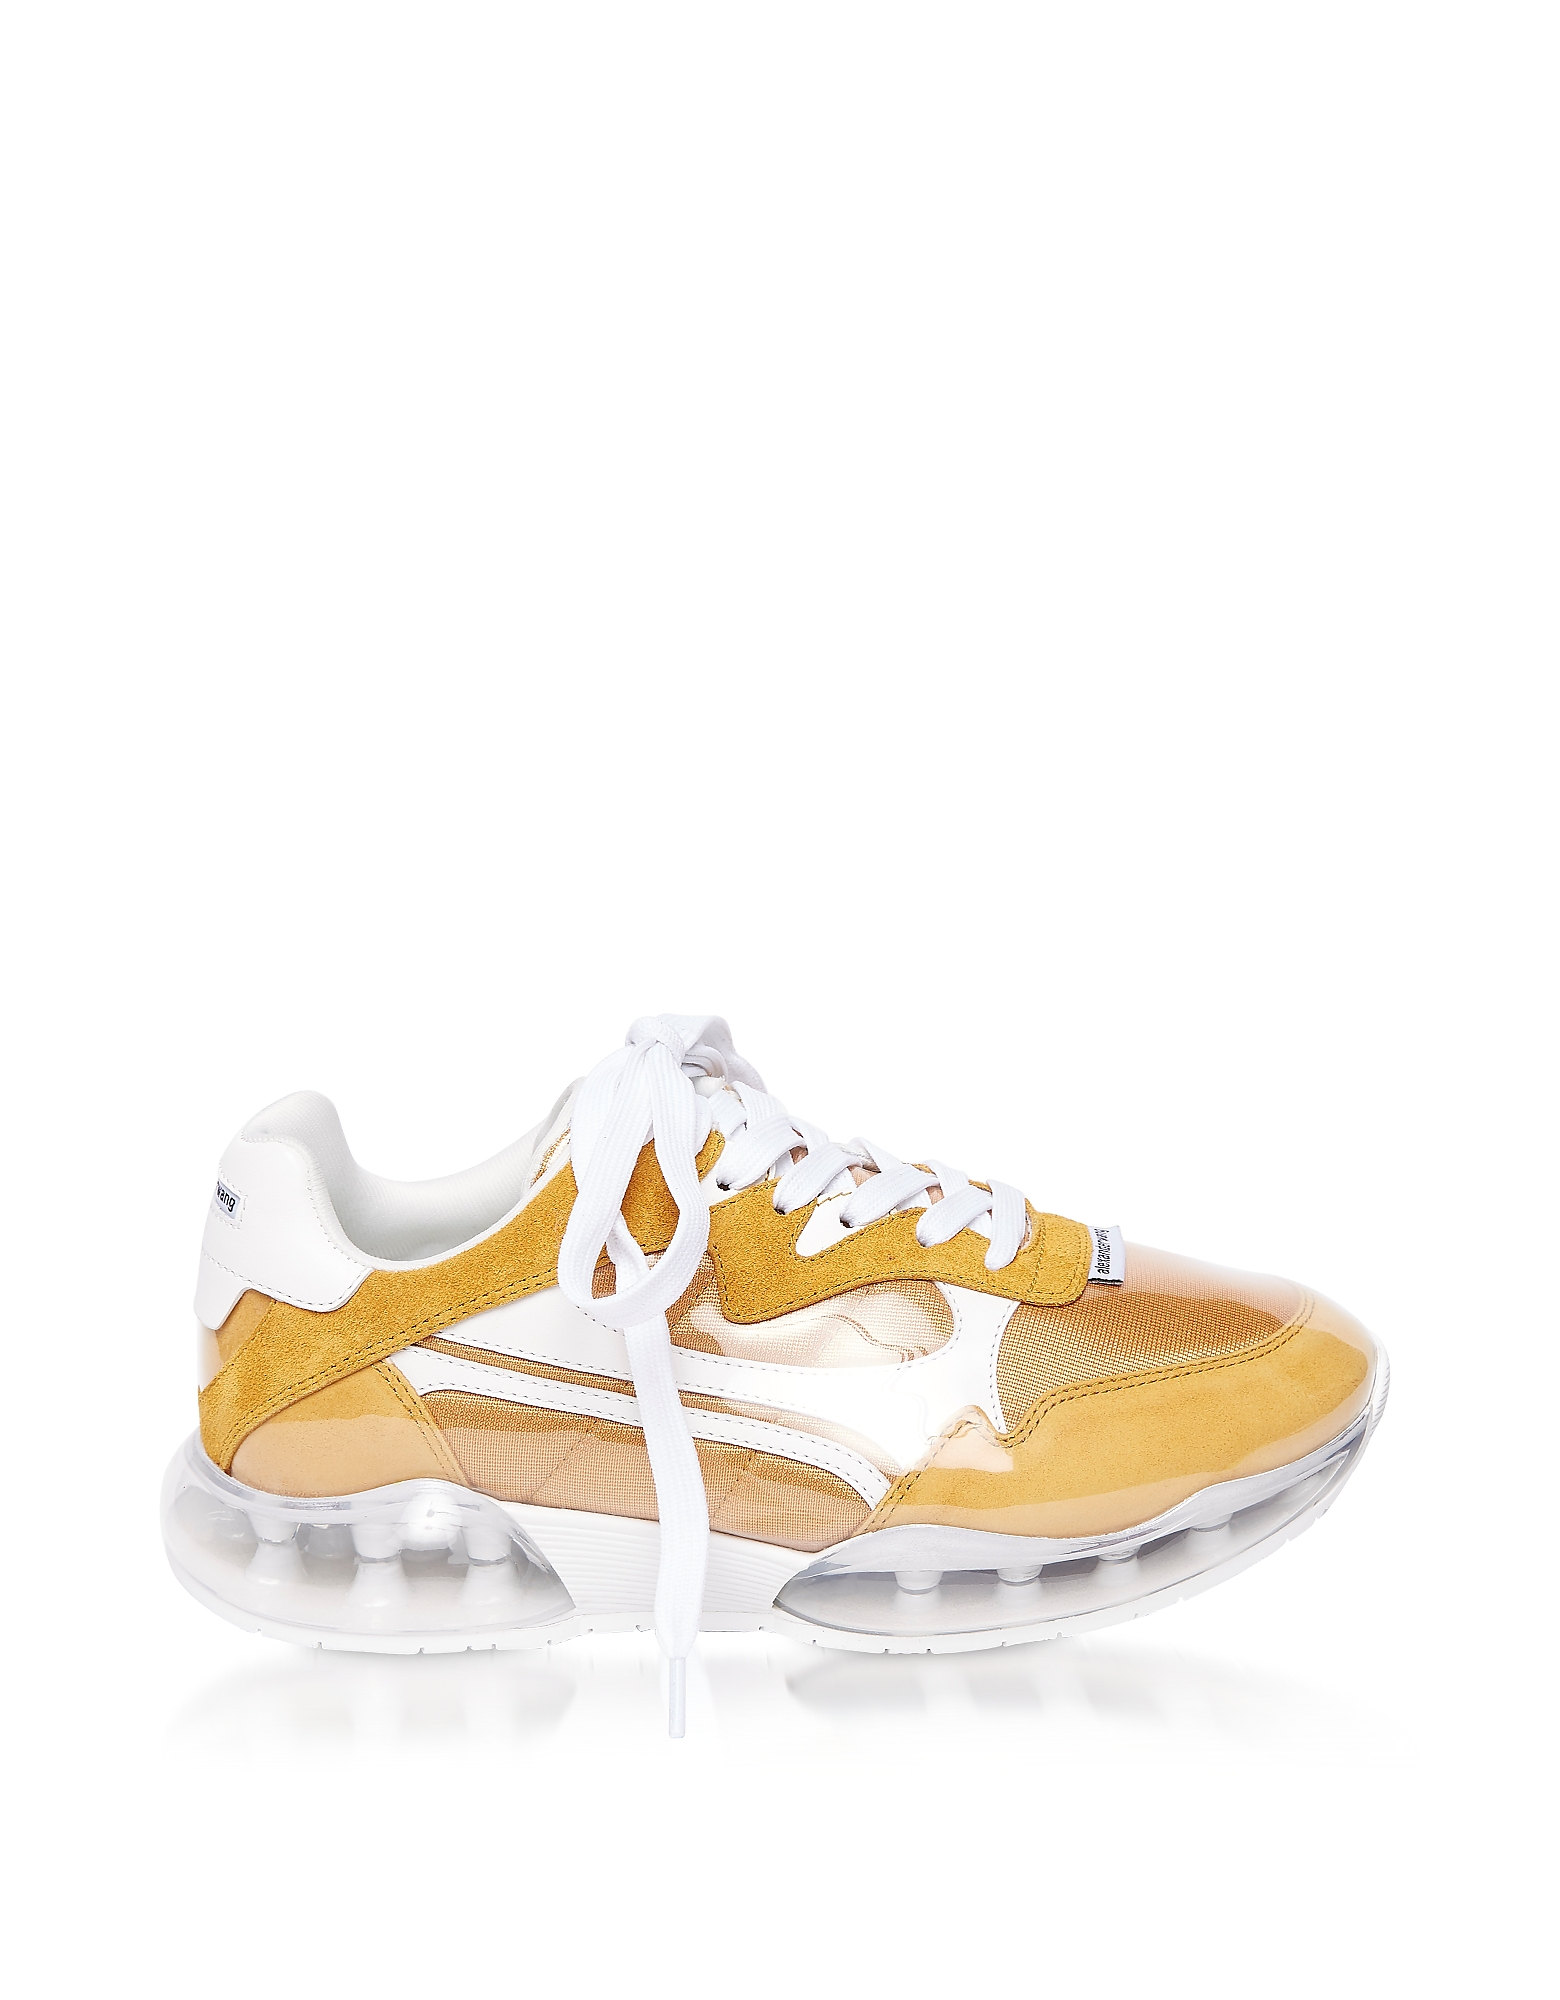 Mineral Yellow Suede&Mesh Stadium Sneakers